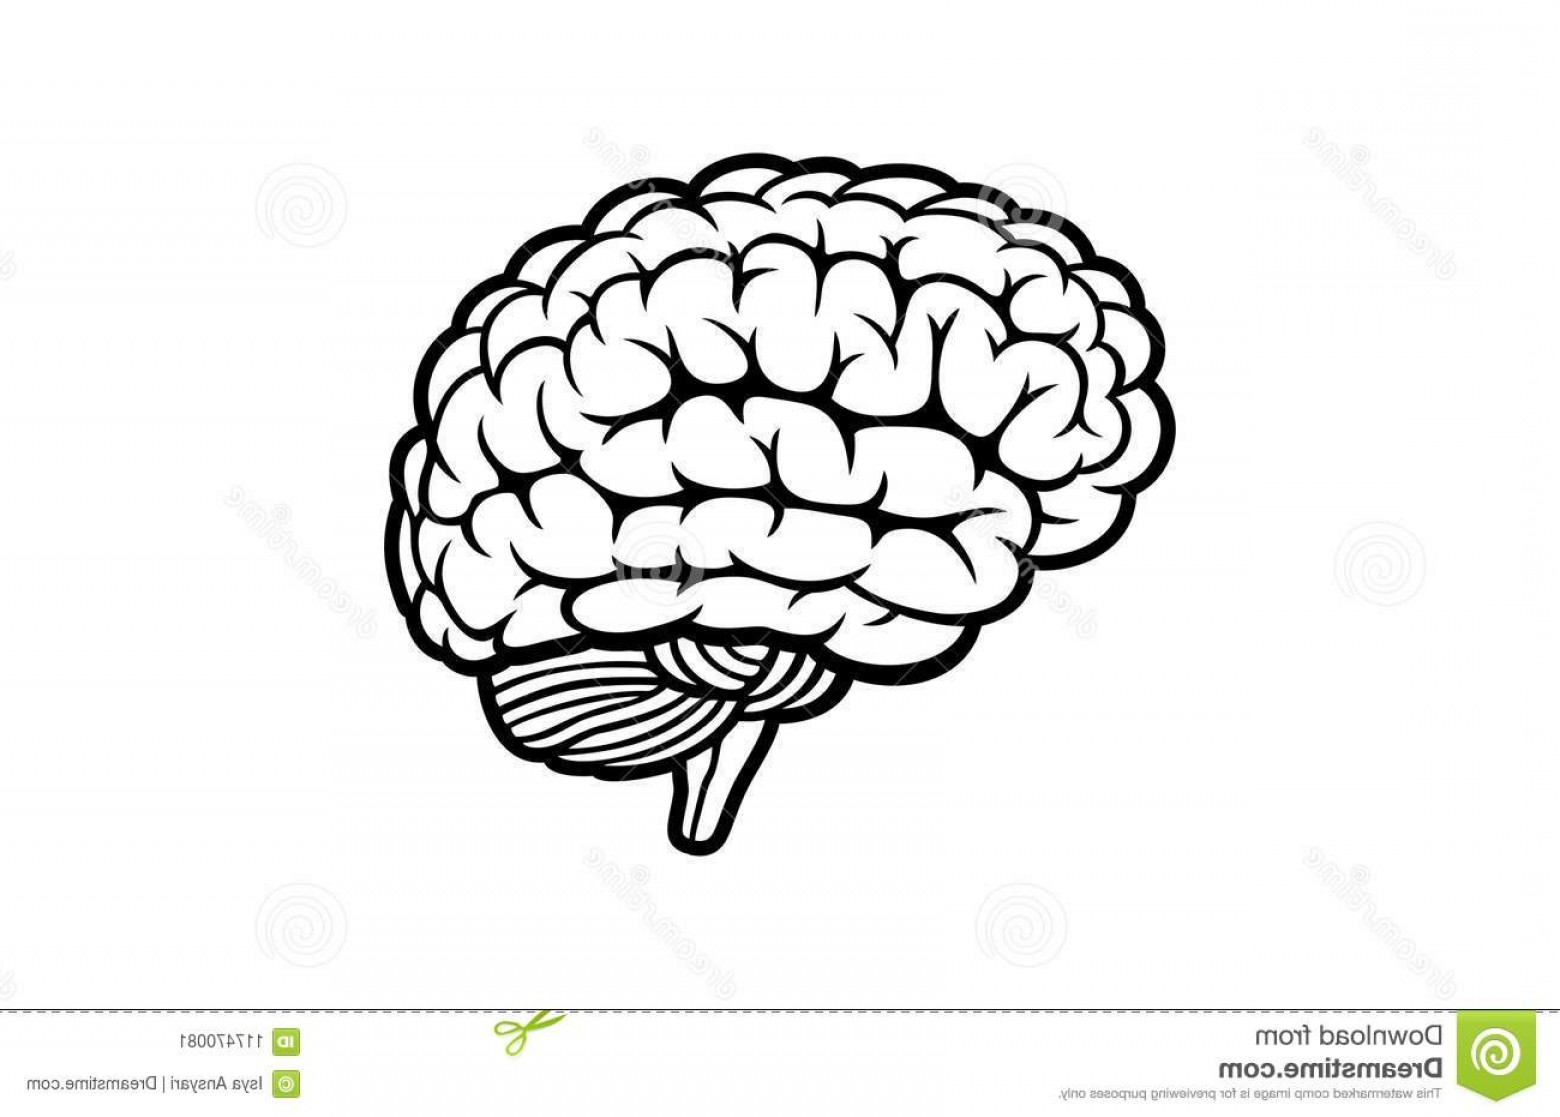 Brain Vector Art: Human Brain Vector White Background Design Vector Outline Illustration Human Brain White Background Image